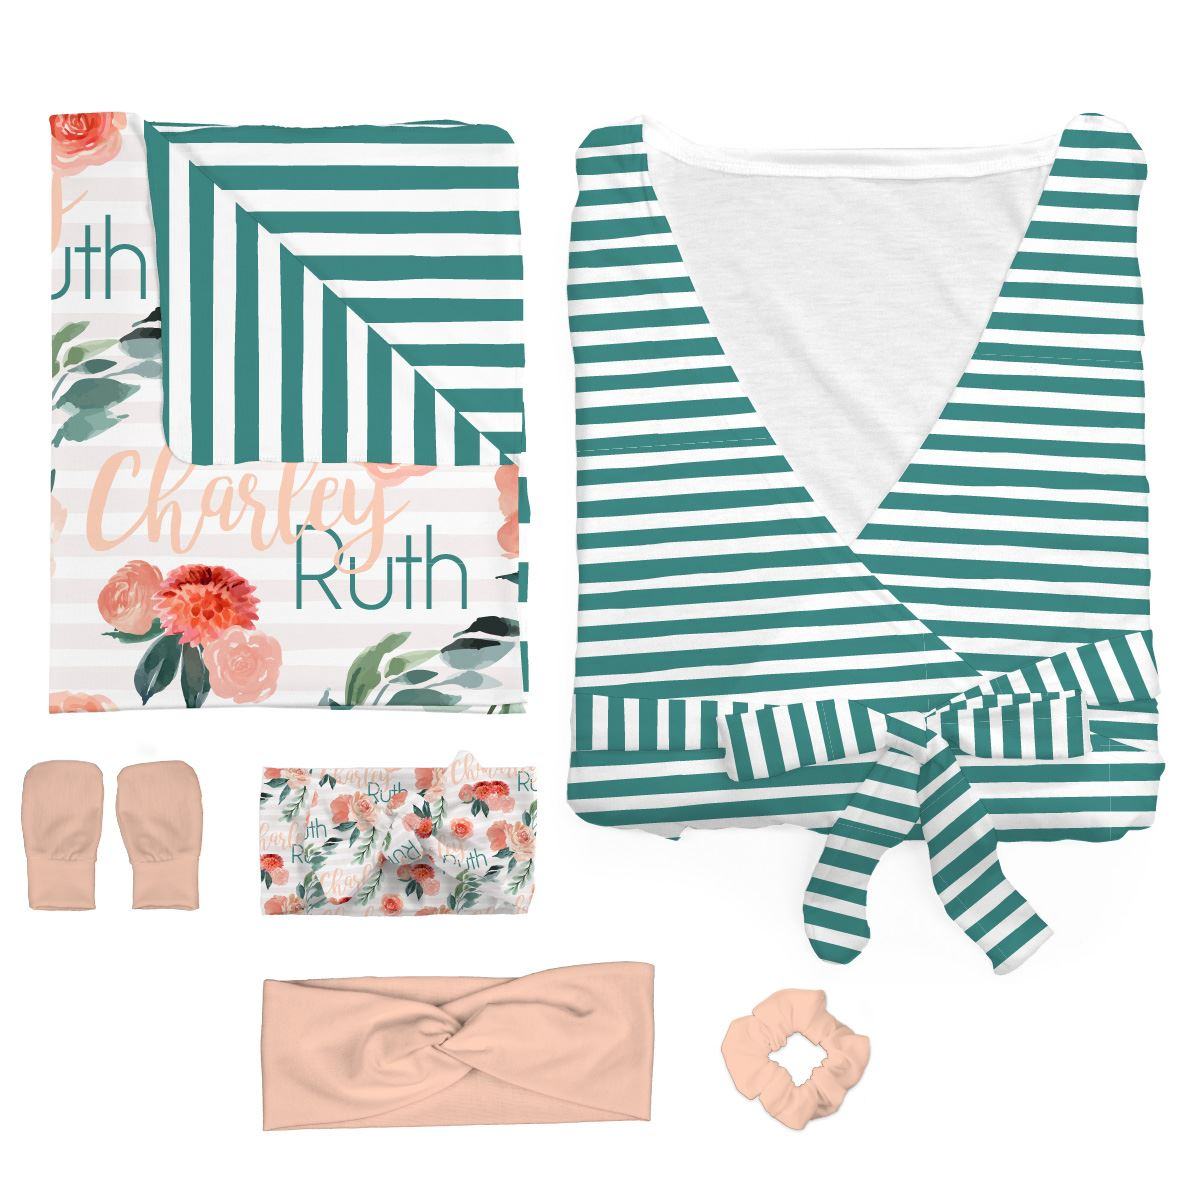 Charley Ruth | Mommy & Me Bundle